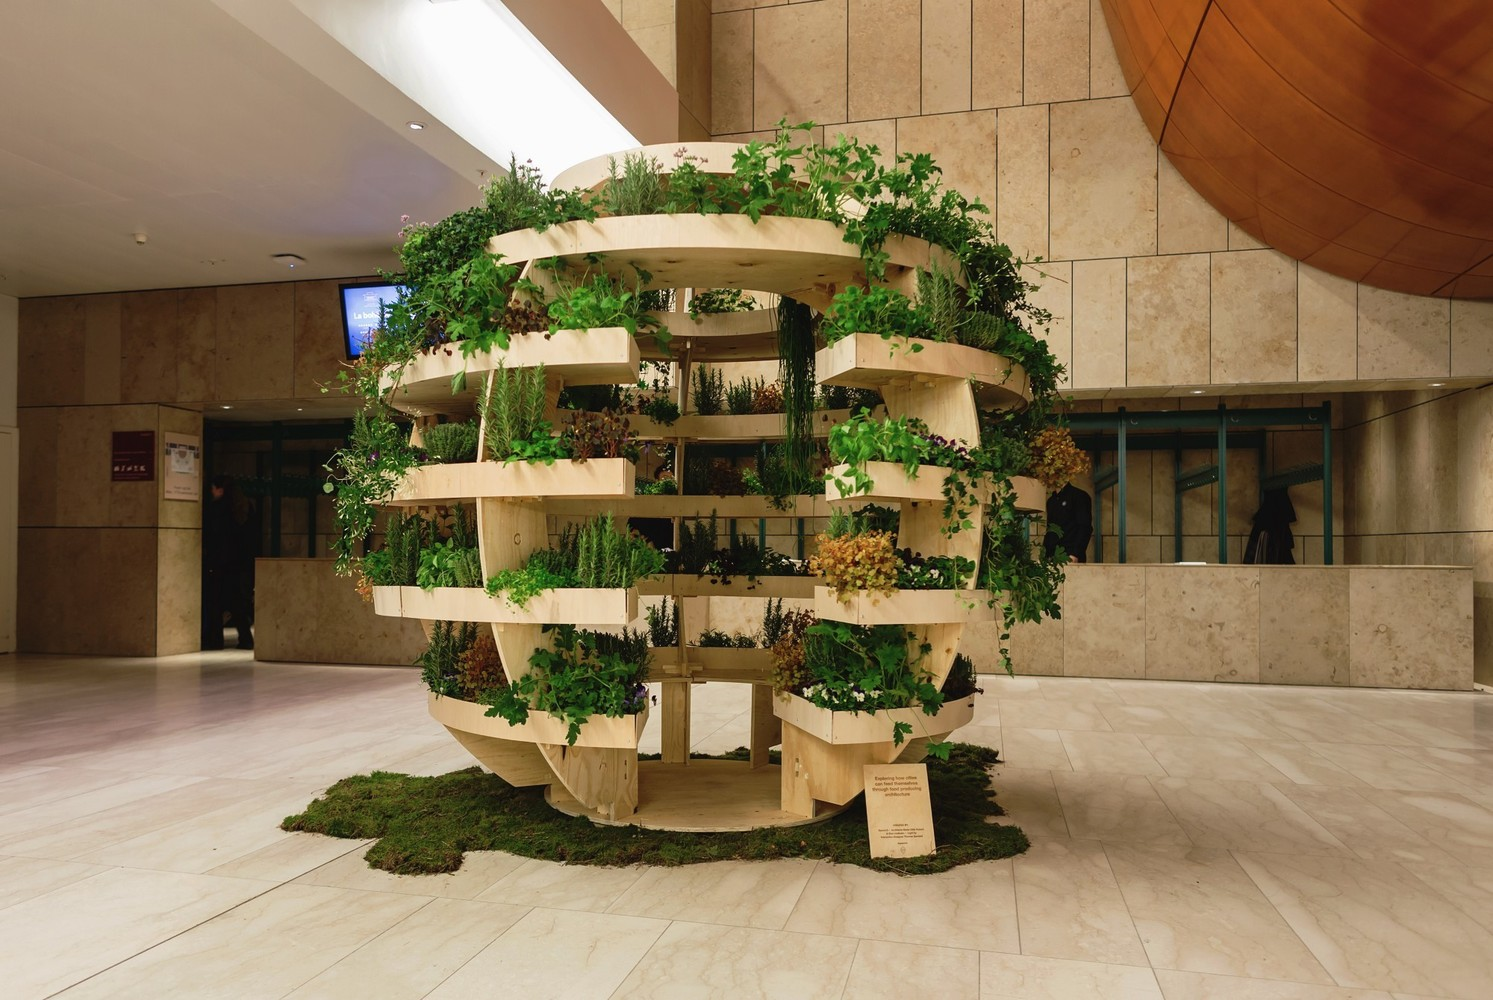 a growroom for hydroponics